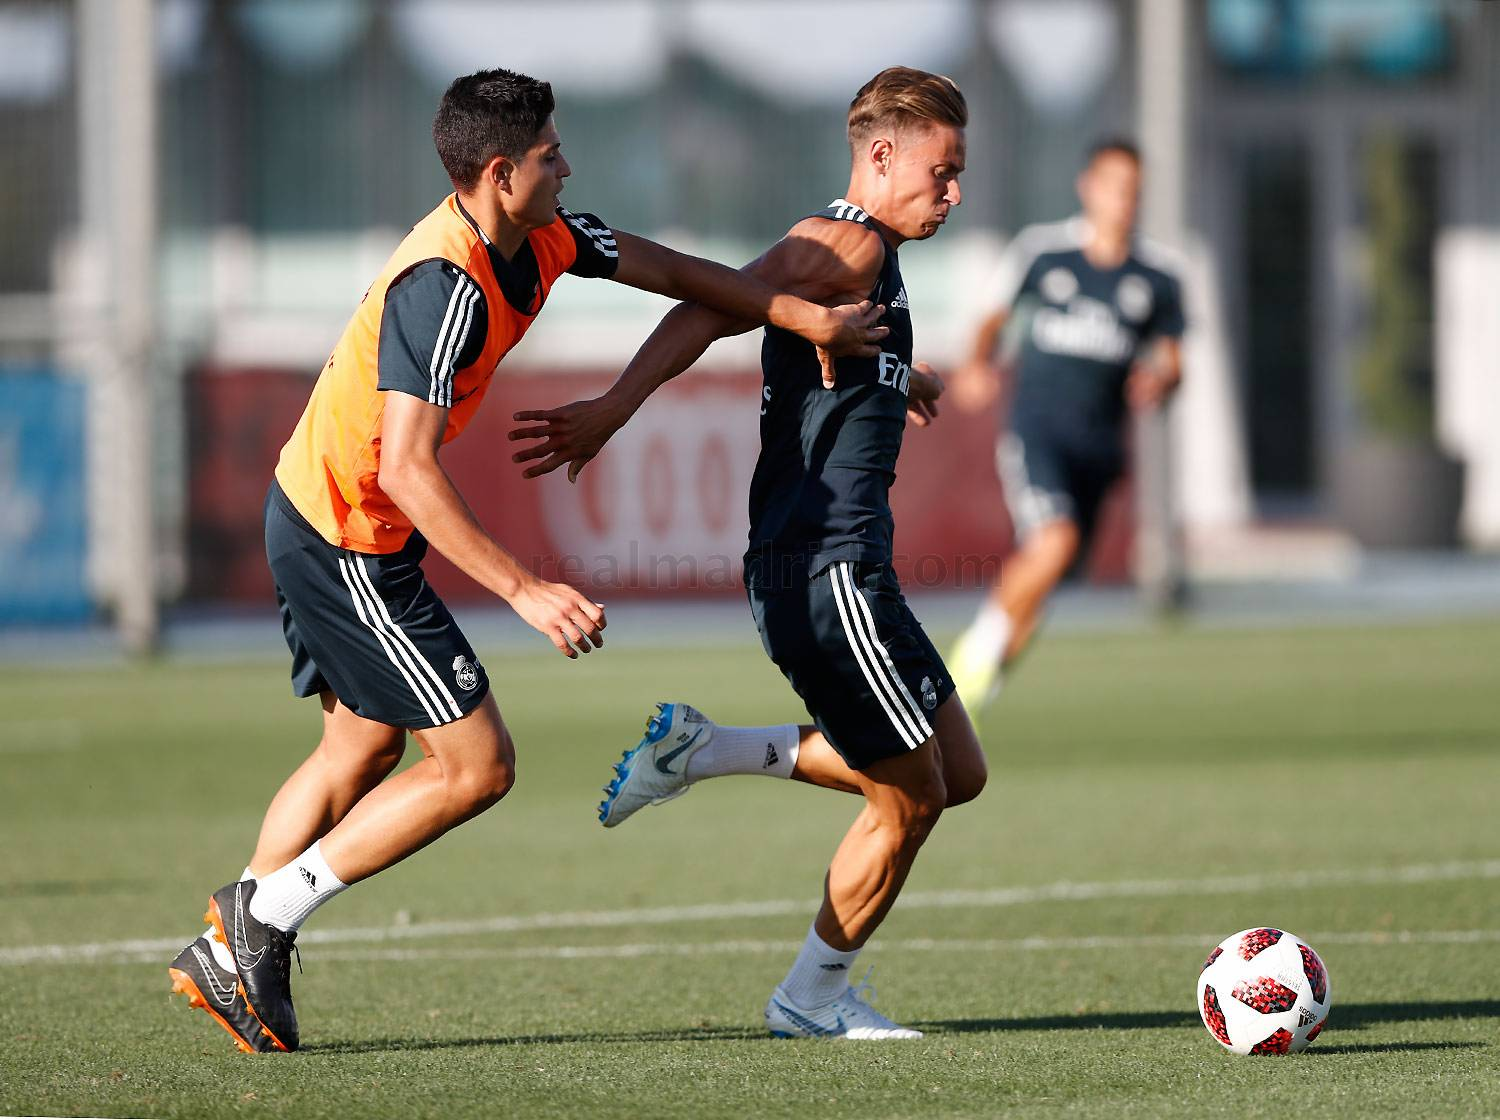 Real Madrid - Entrenamiento del Real Madrid - 25-07-2018